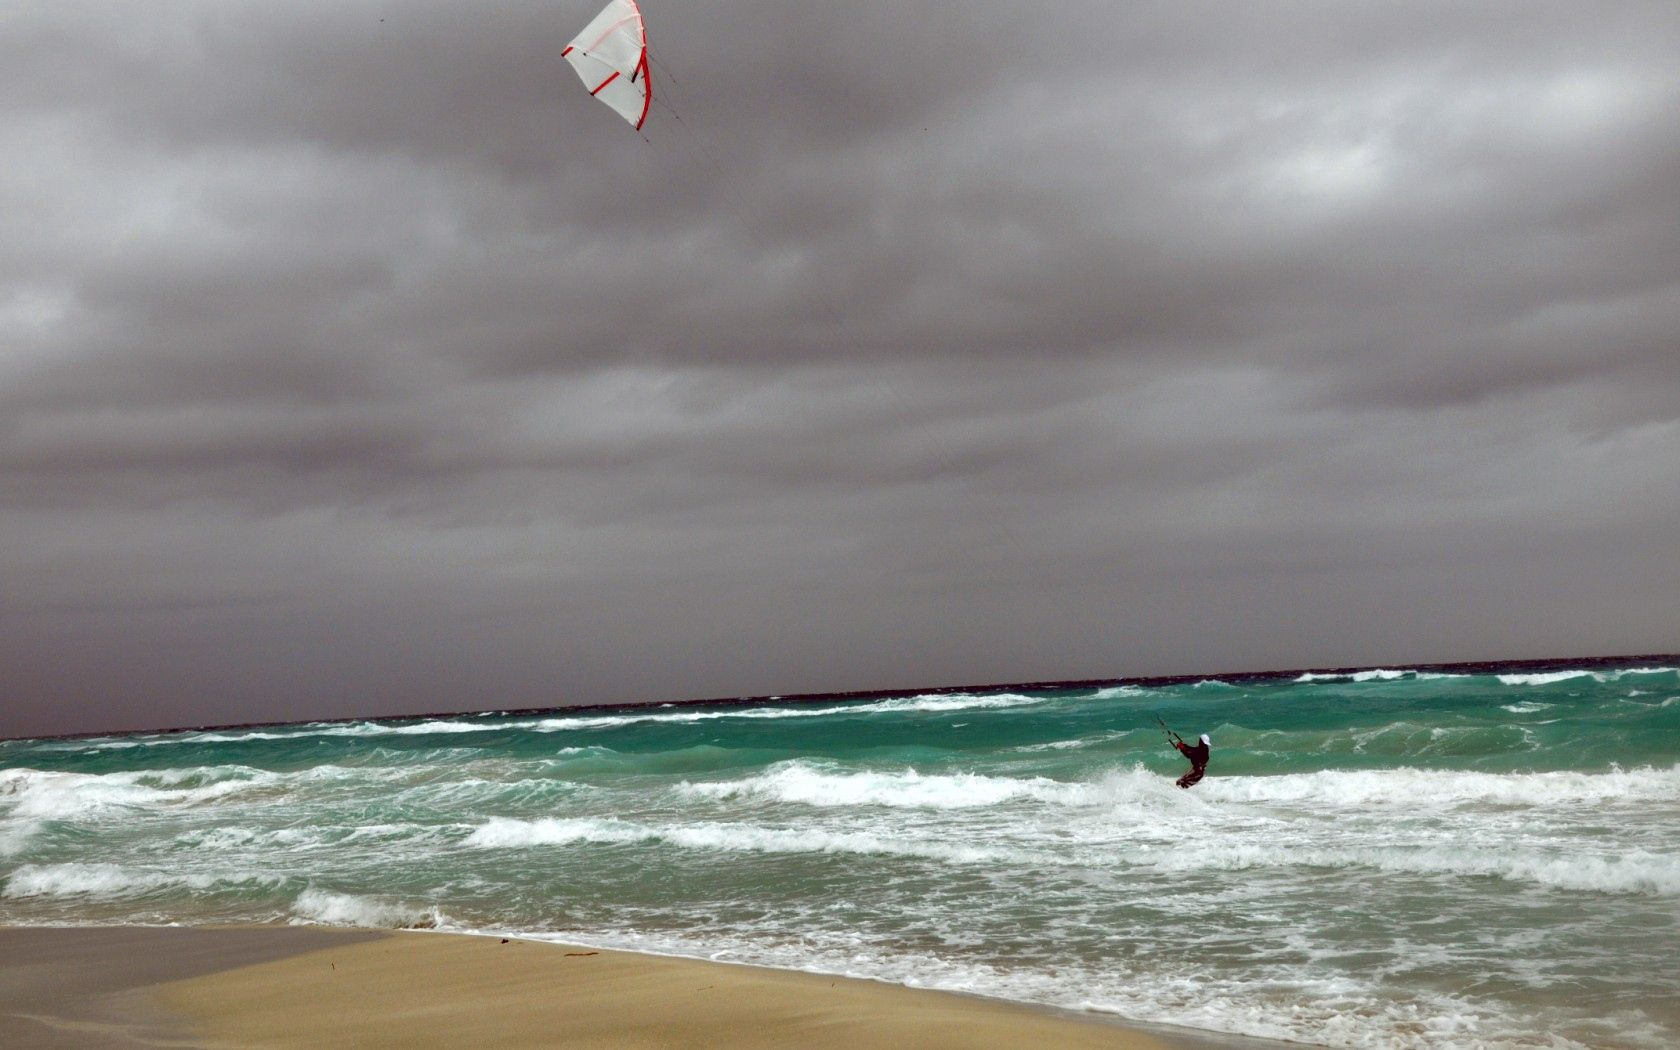 87502 download wallpaper Sports, Sea, Serfing, Windsurfing, Athlete, Sportsman, Cuba, Wind, Spray, Waves screensavers and pictures for free